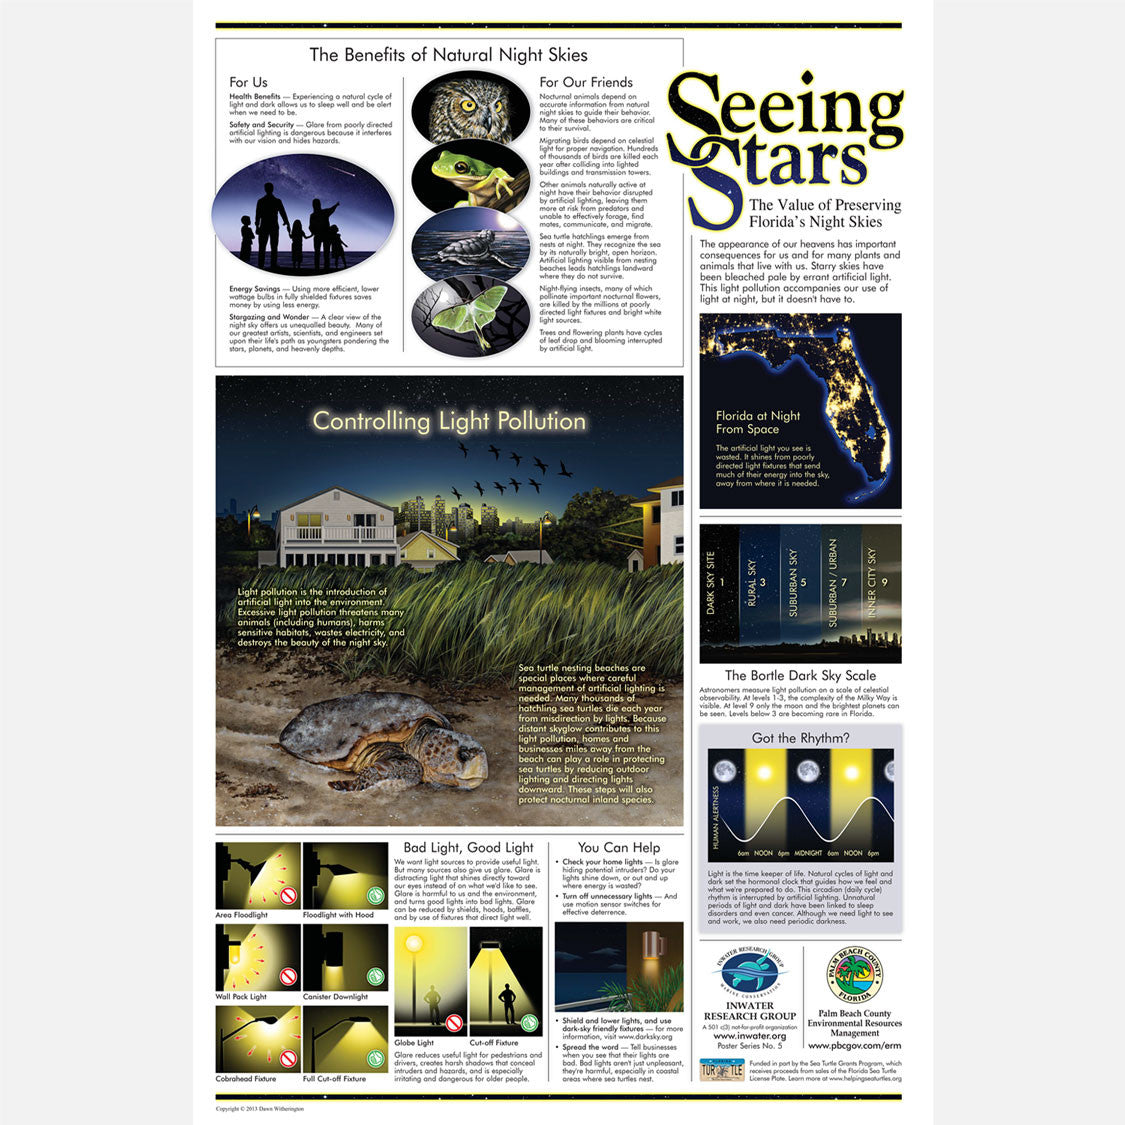 This beautiful poster provides information on the value of preserving Florida's night skies and controlling light pollution.